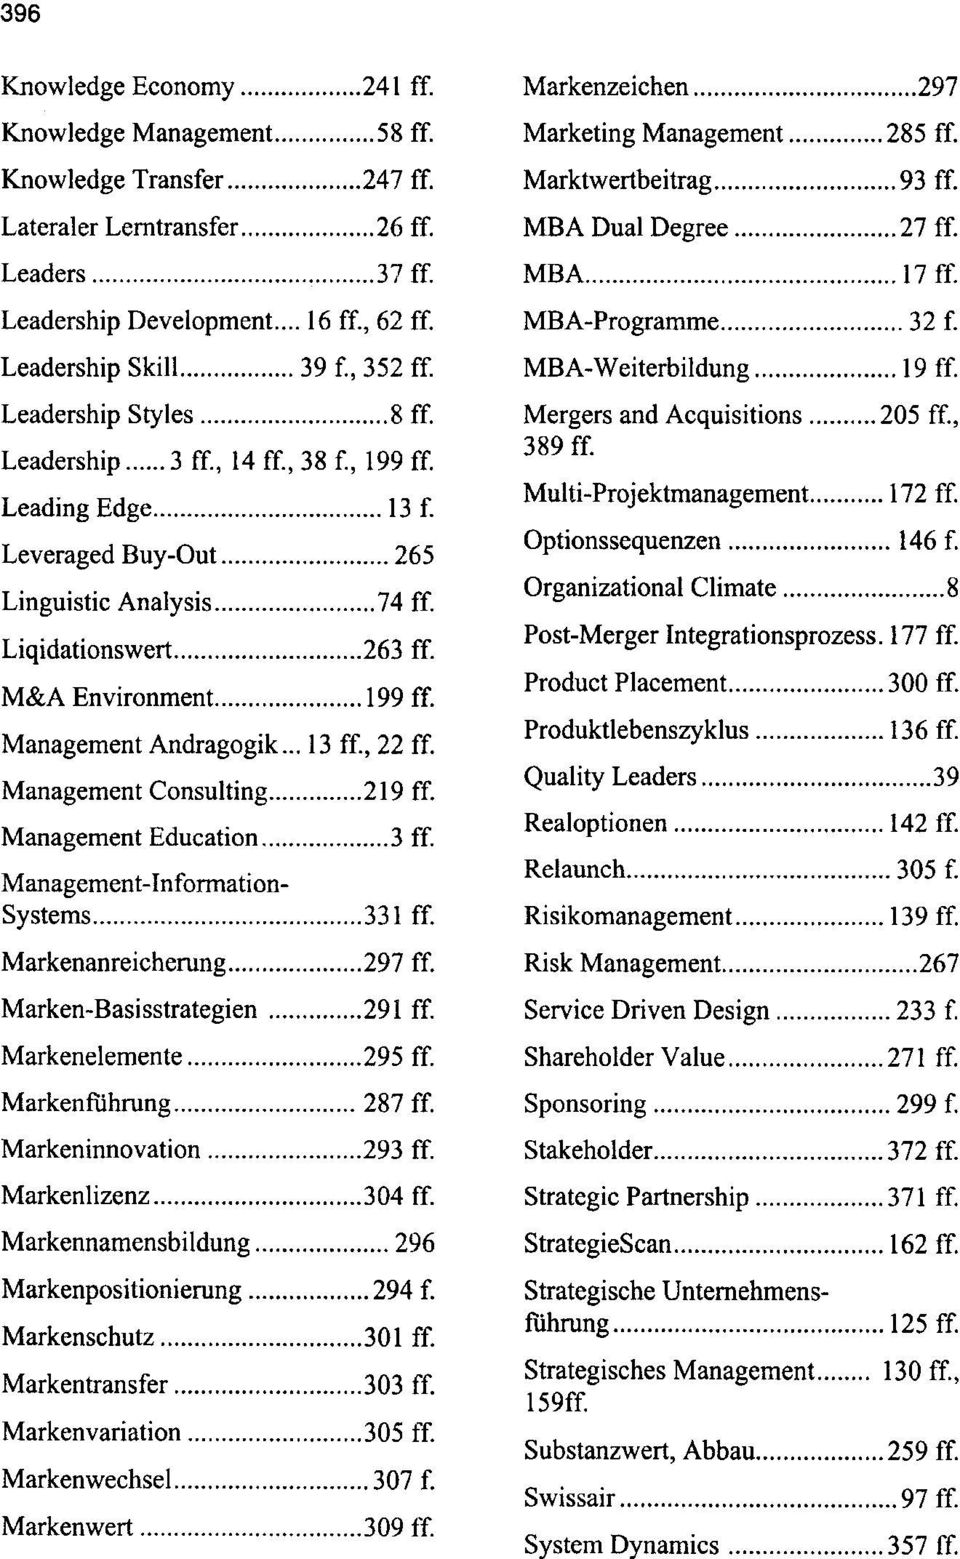 Leadership... 3 ff., 14 ff., 38 f., 199 ff. Leading Edge... 13 f. Leveraged Buy-Out... 265 Linguistic Analysis... 74 ff. Liqidationswert... 263 ff. M&A Environment...... 199 ff. Management Andragogik.